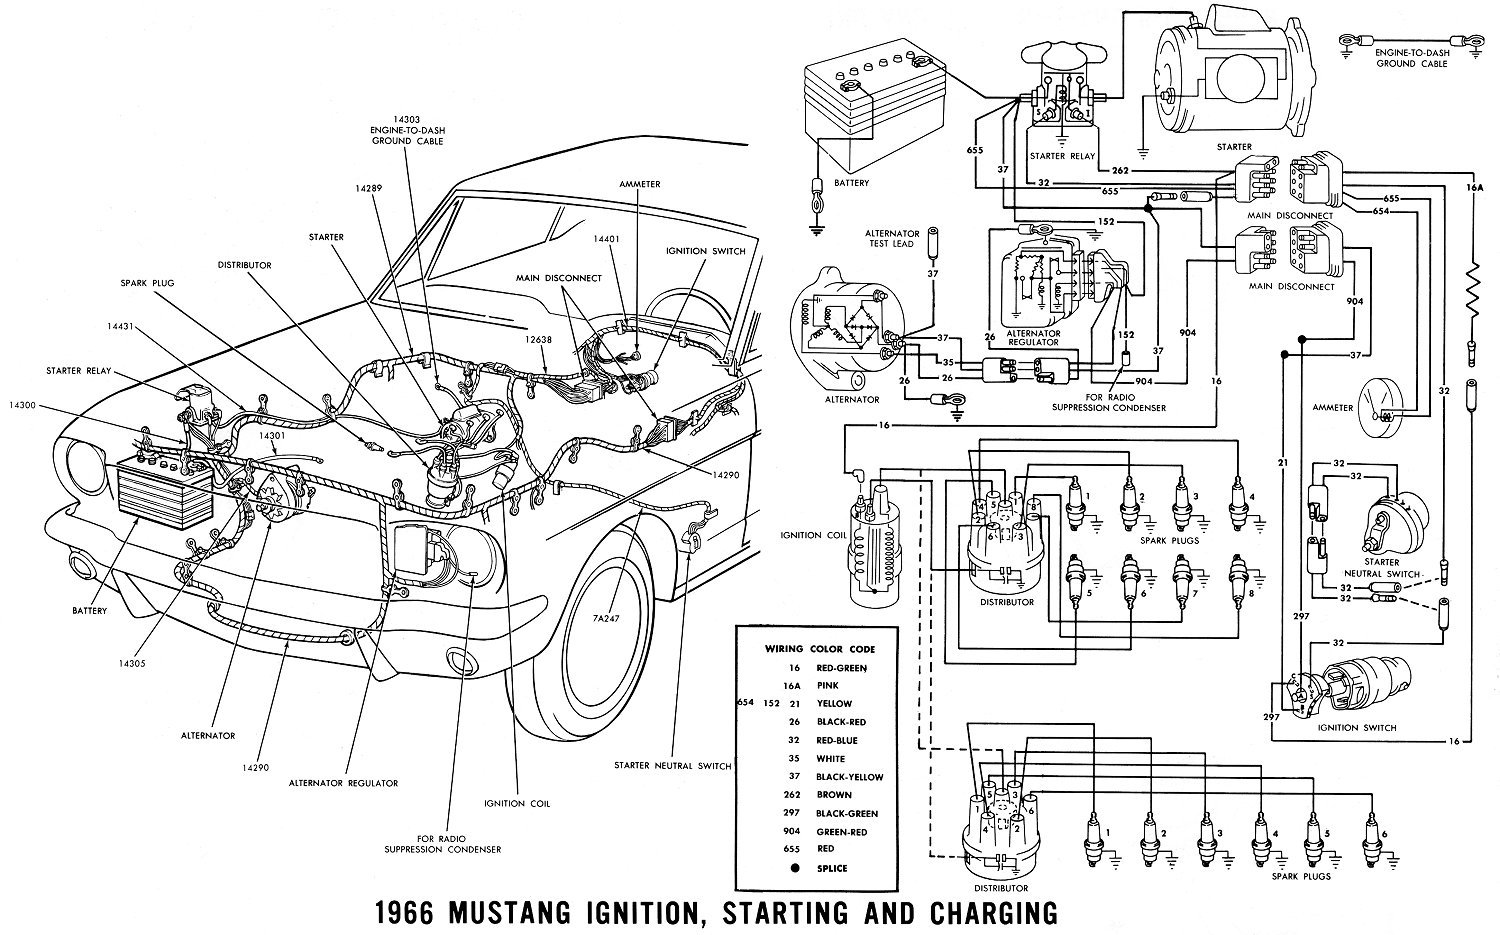 1018 Cub Cadet Wiring Diagram 68 Mustang Fastback Starting Know About 1966 Ignition Switch What Pins Are